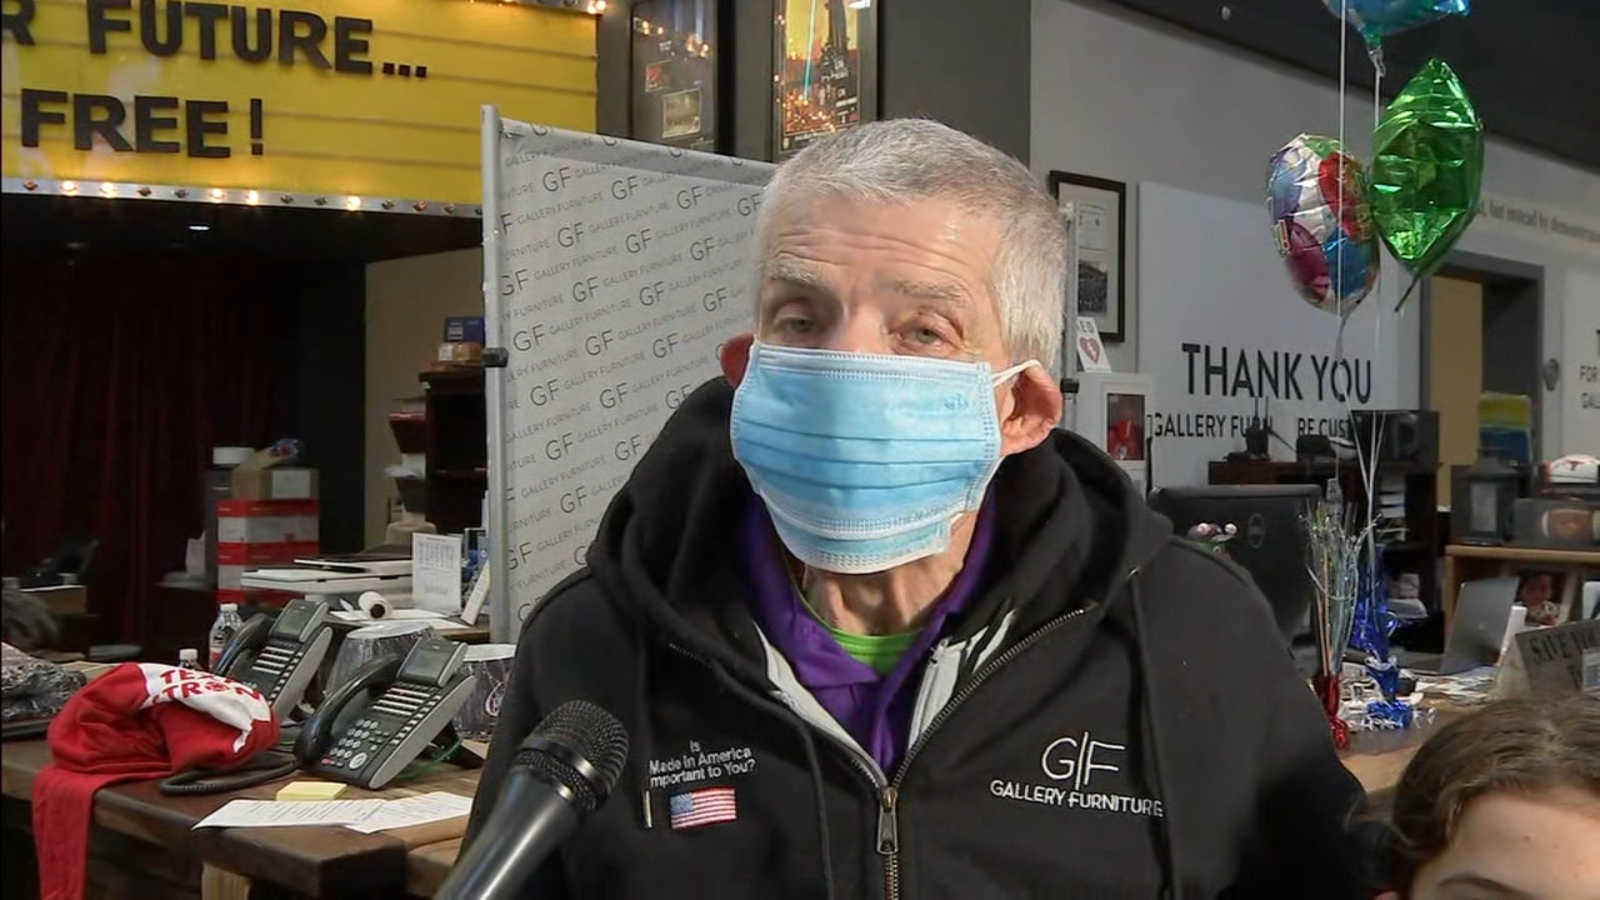 Mattress Mack Opens Houston Gallery Furniture Store As Shelter To People Iced Out In Winter Storm Abc13 Houston